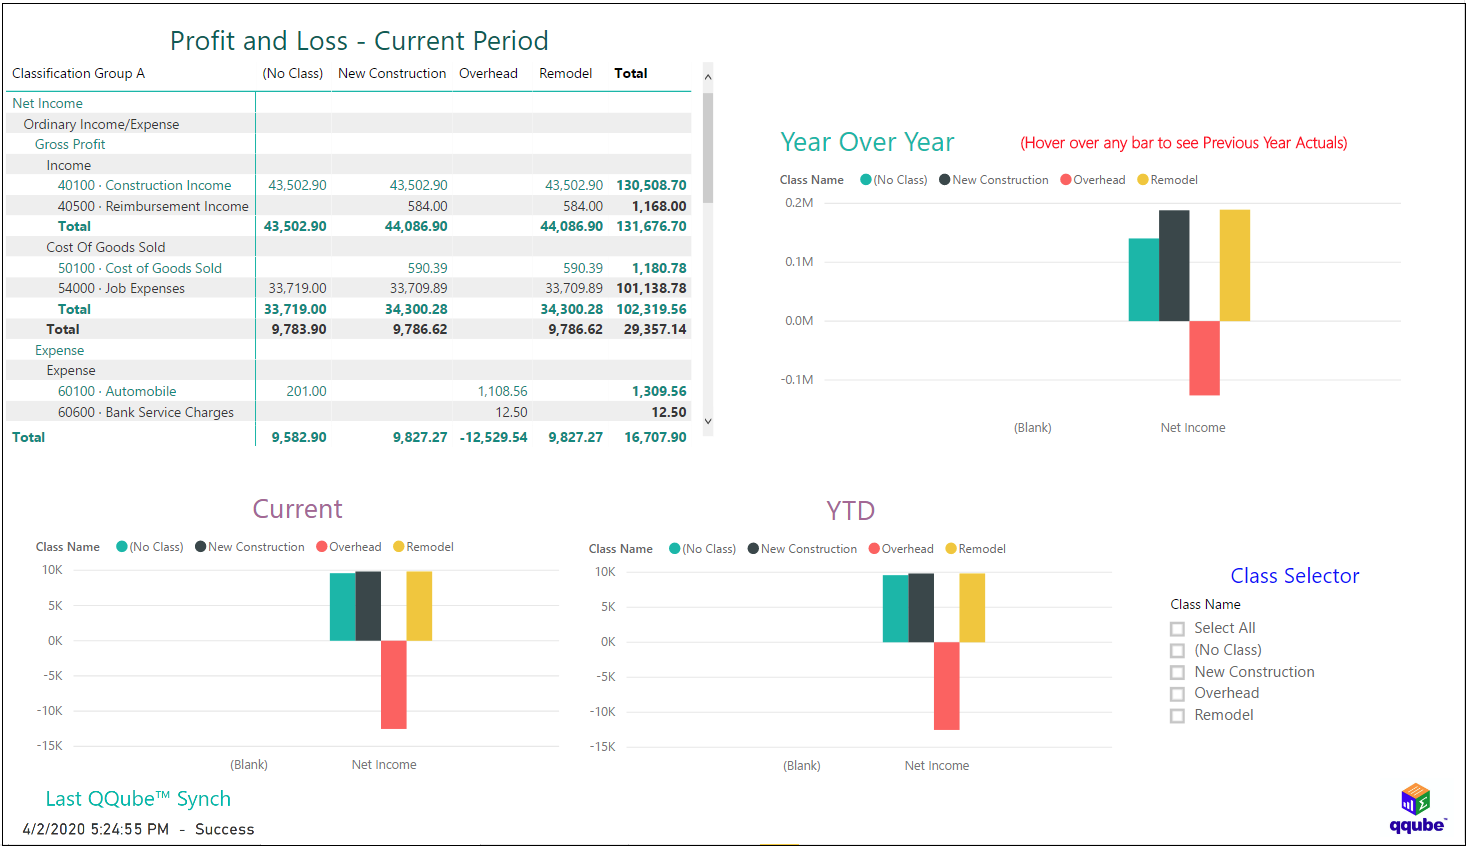 QuickBooks Profit and Loss by Class Comparison for 52/53 Tax Year using QQube with Power BI